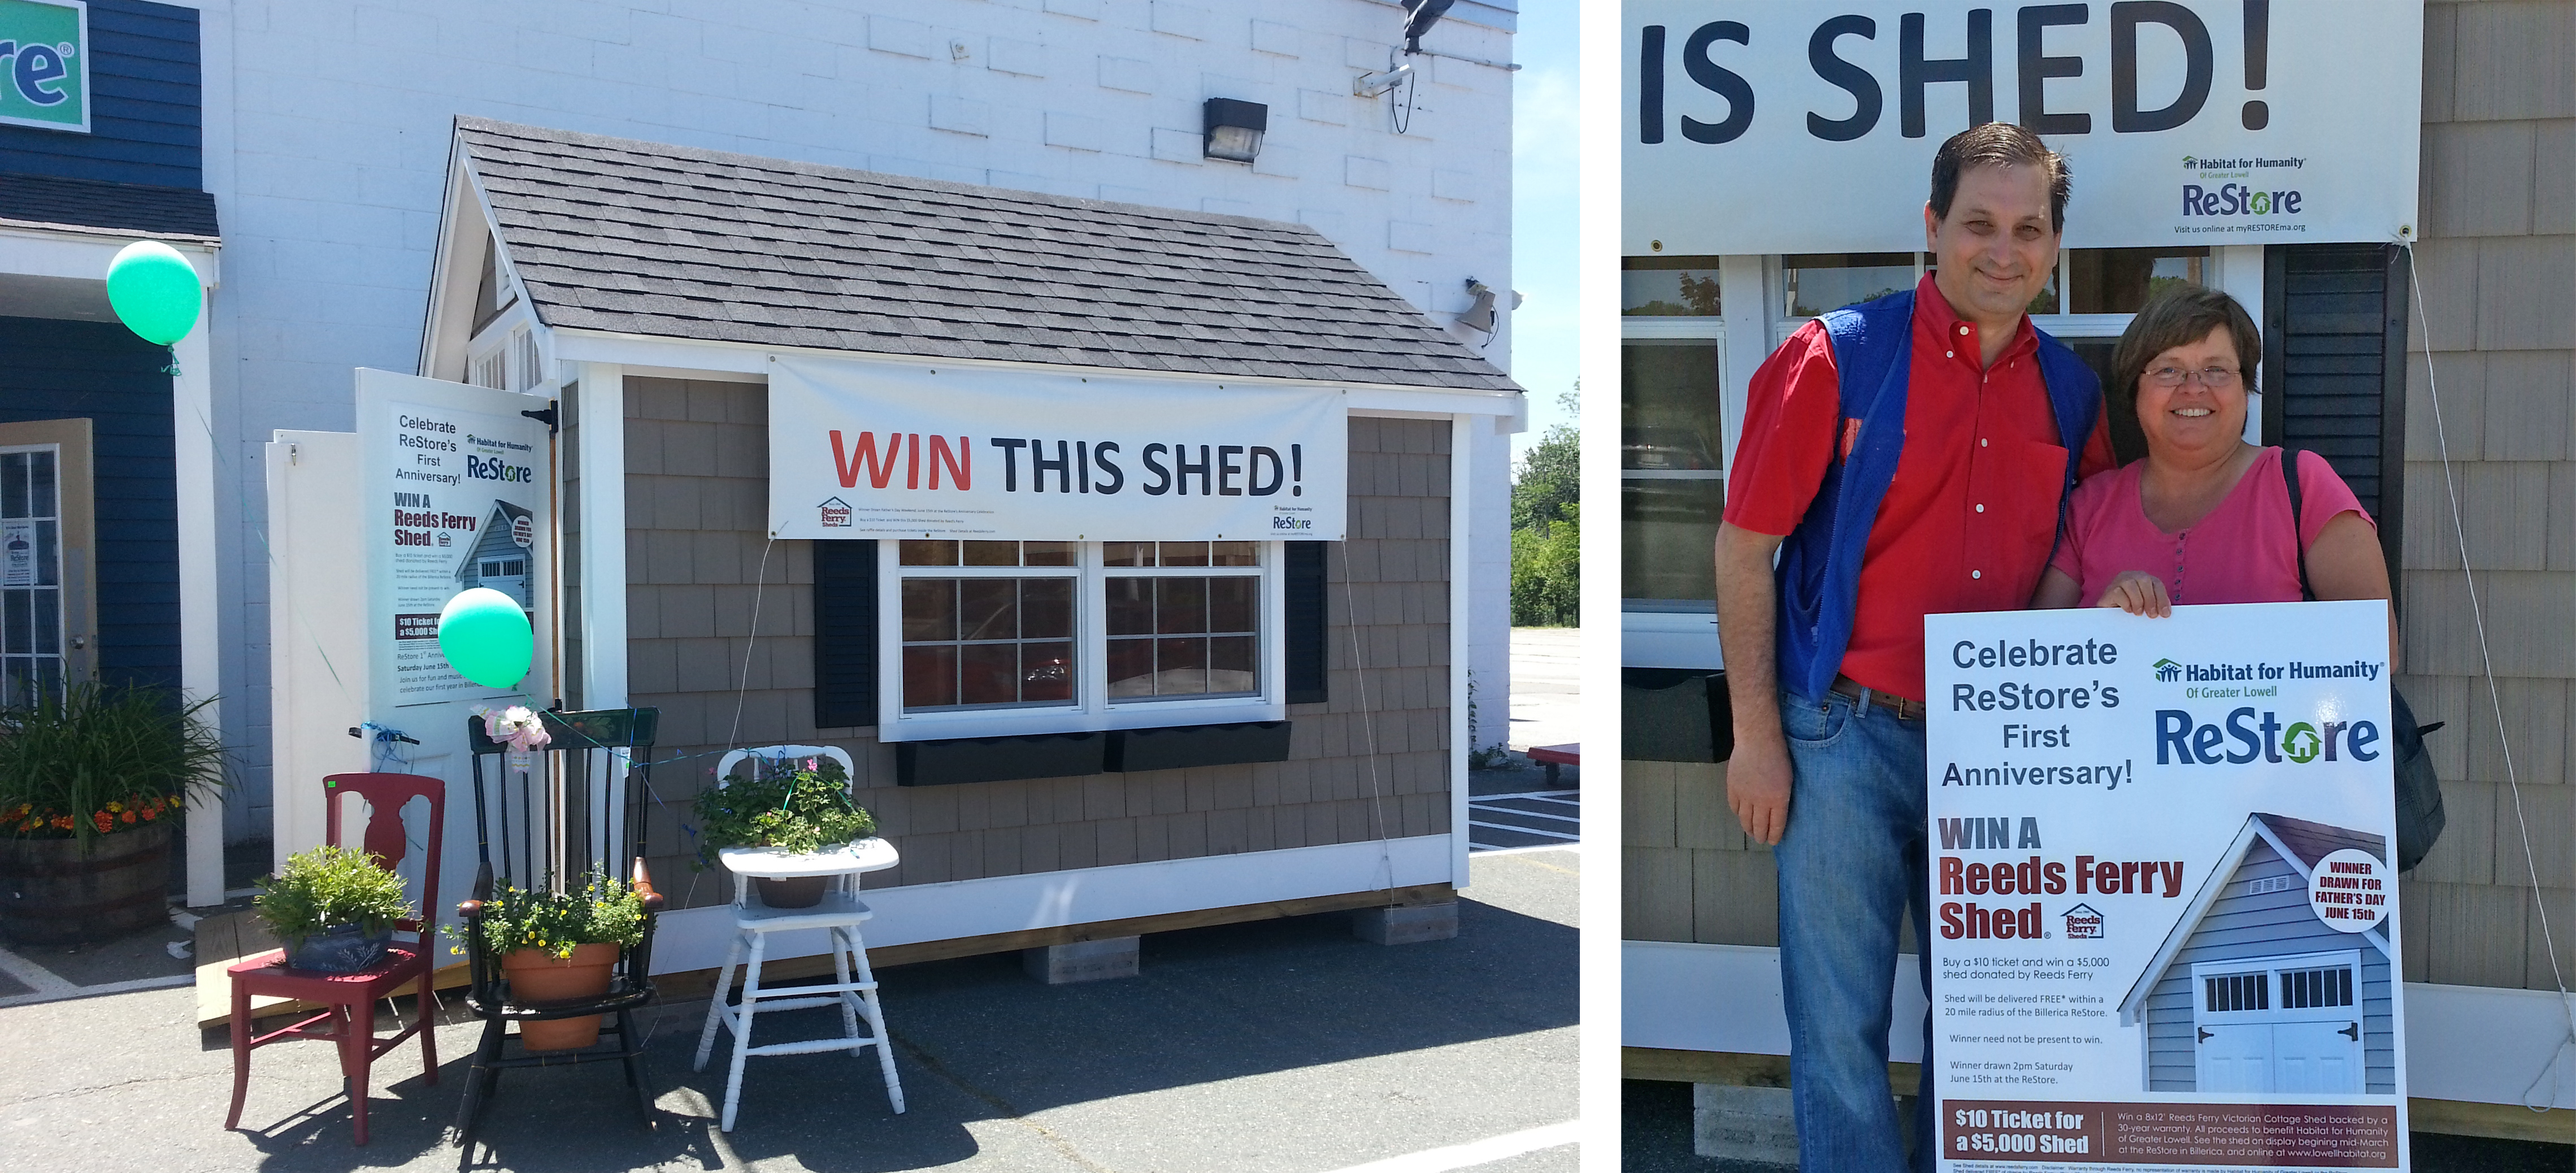 Congratulations to Maggie O'Donnell of Chelmsford, awarded the grand prize by Dan Bush of Habitat for Humanity of Greater Lowell. Ms O'Donnell is the proud owner of a Reeds Ferry 8x12' Victorian Cottage. (which she can visit at her son's house ;)